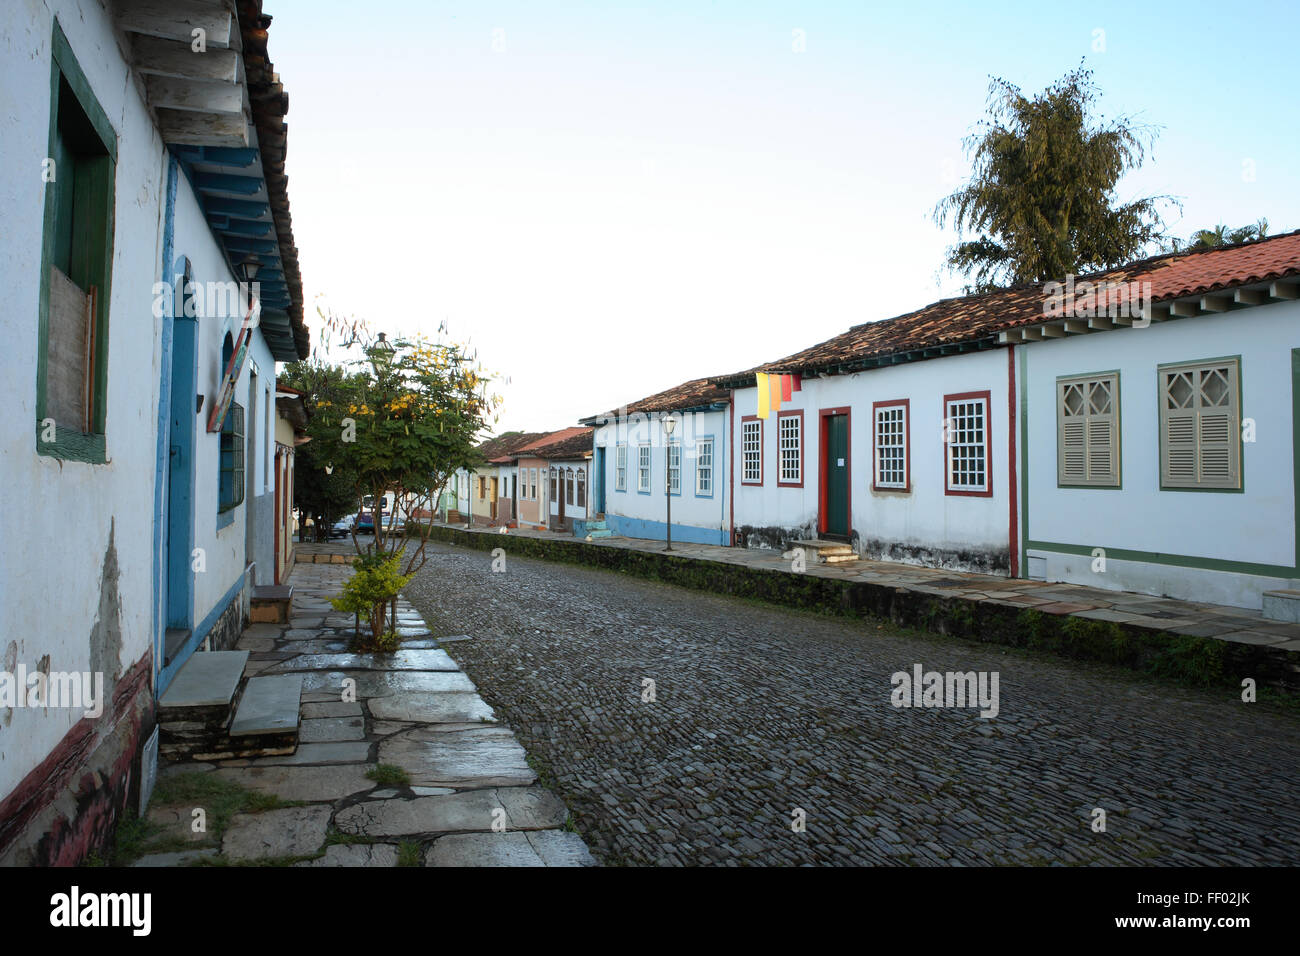 Brazil, Goias, Pirenopolis, cobbled street lined with colonial houses - Stock Image